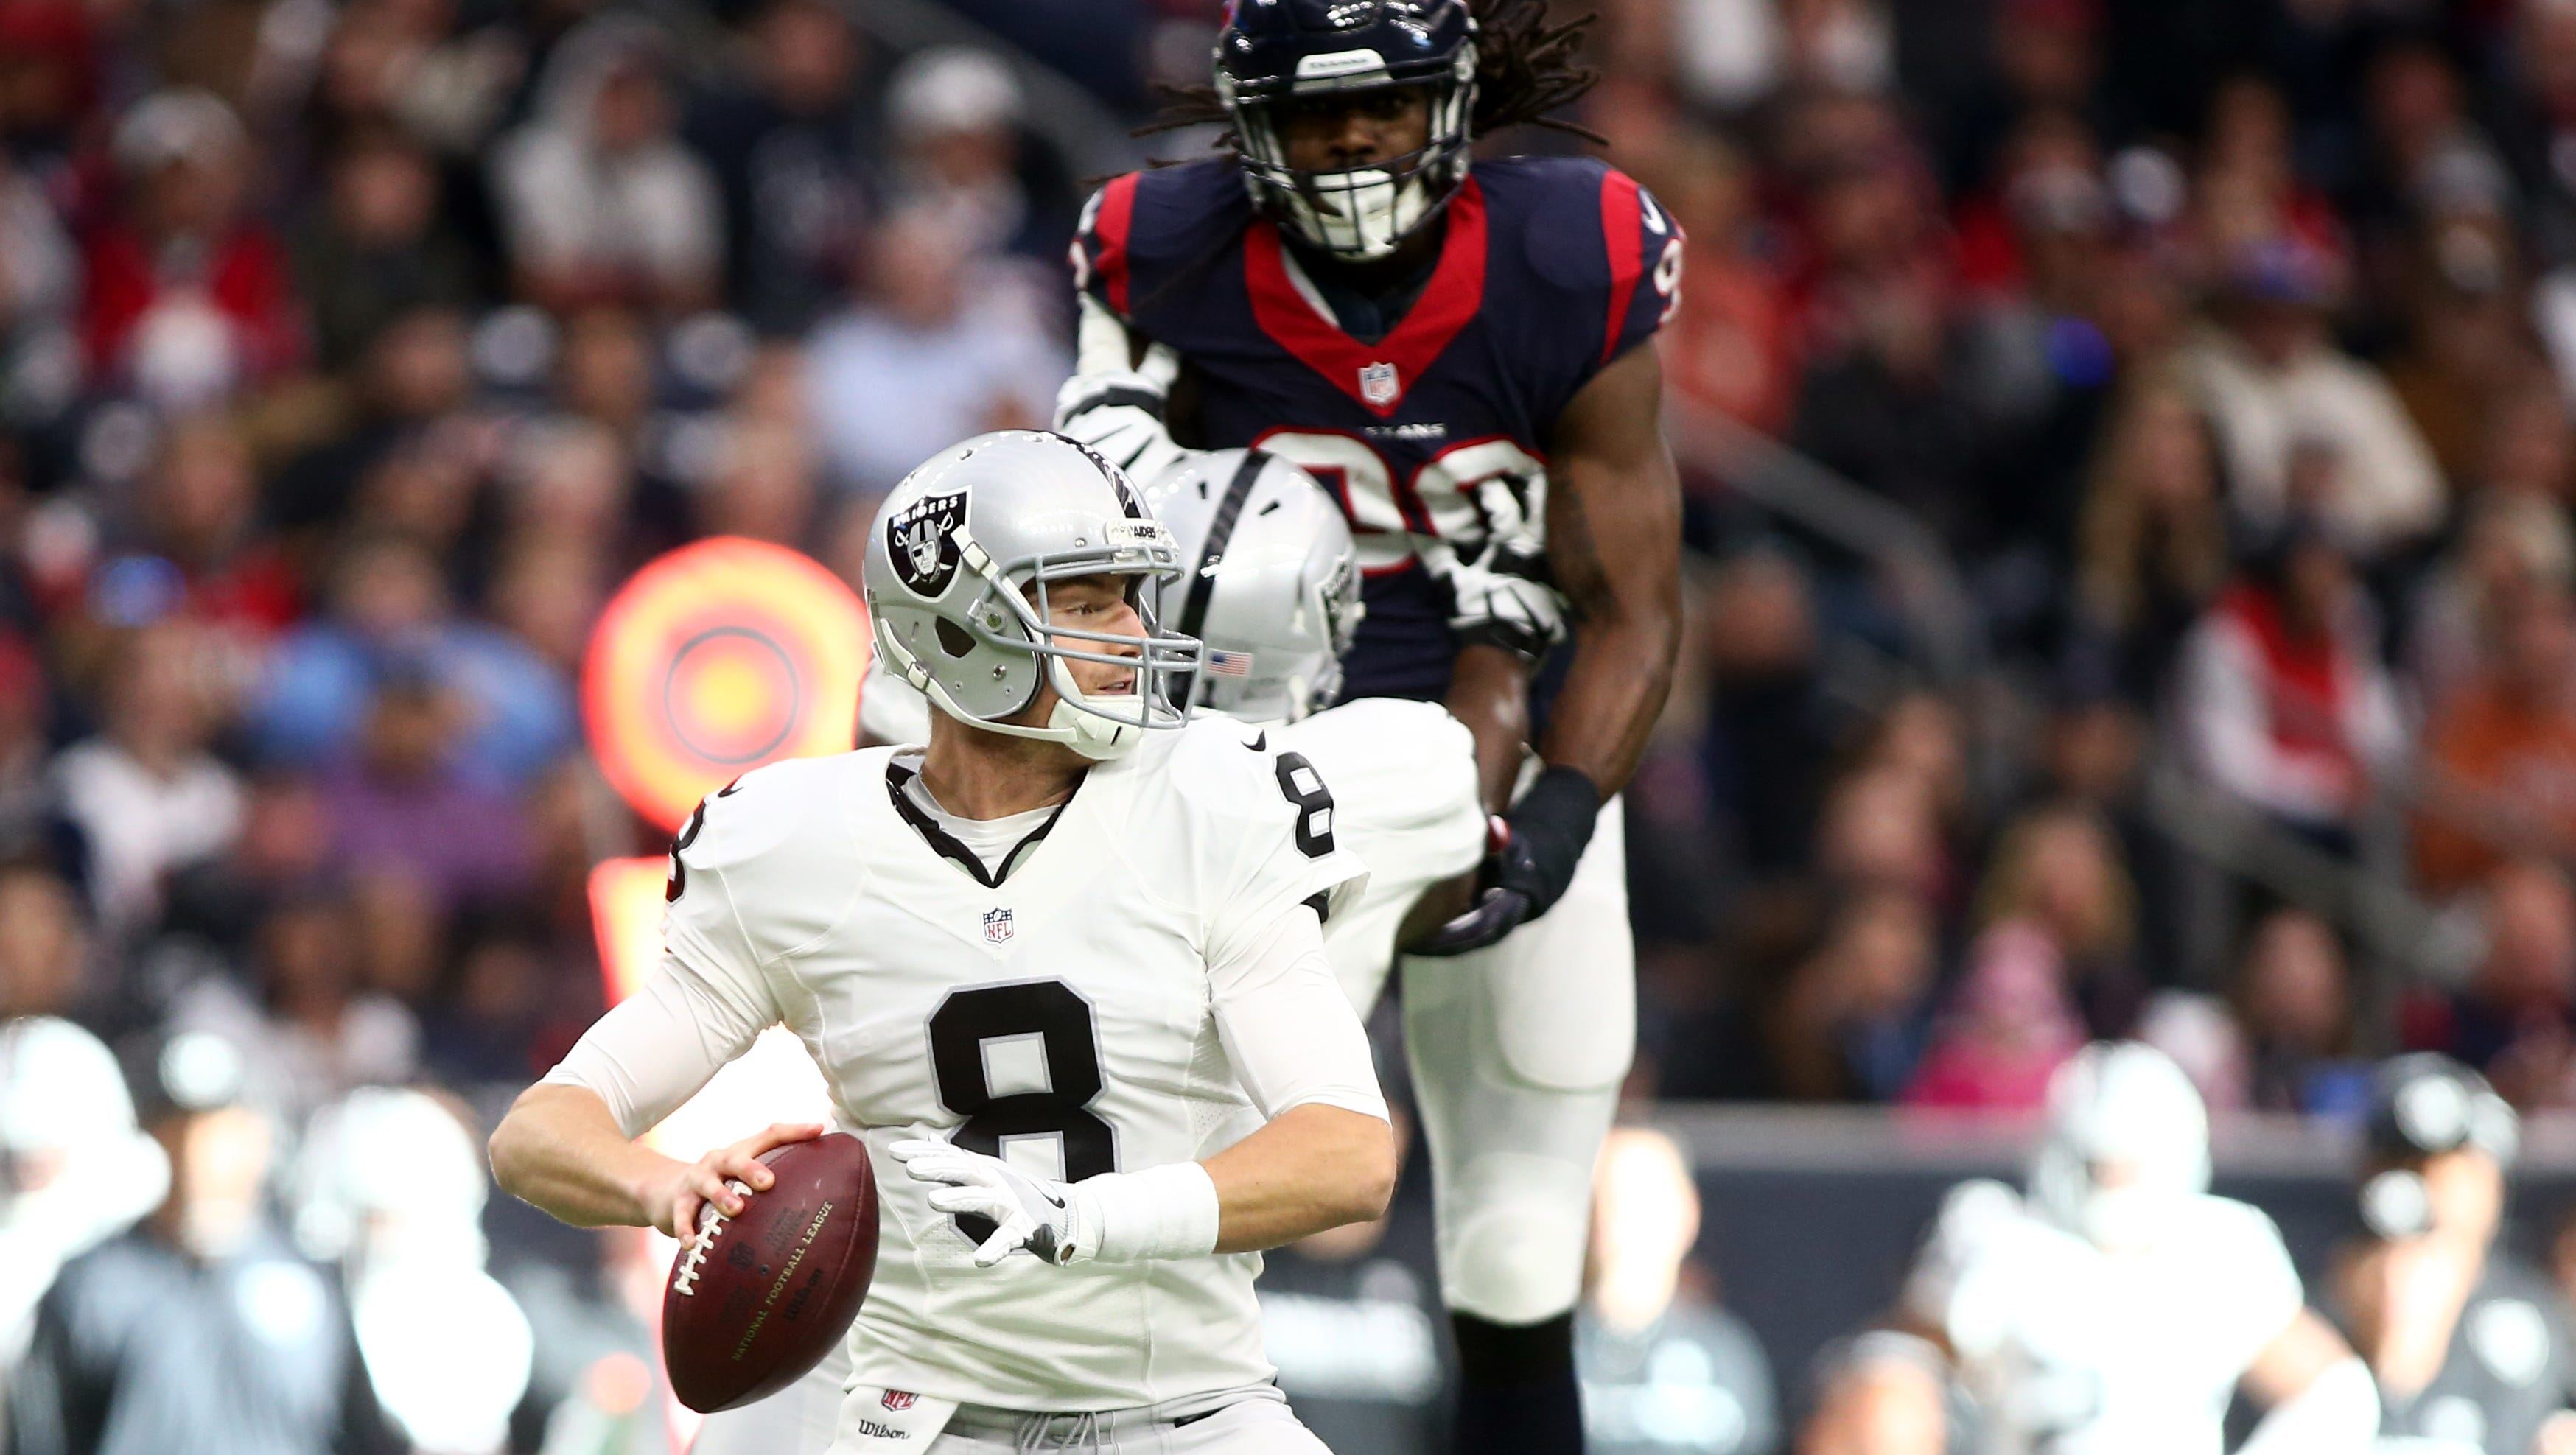 Couch: Connor Cook unfazed (as always) by ride with Raiders